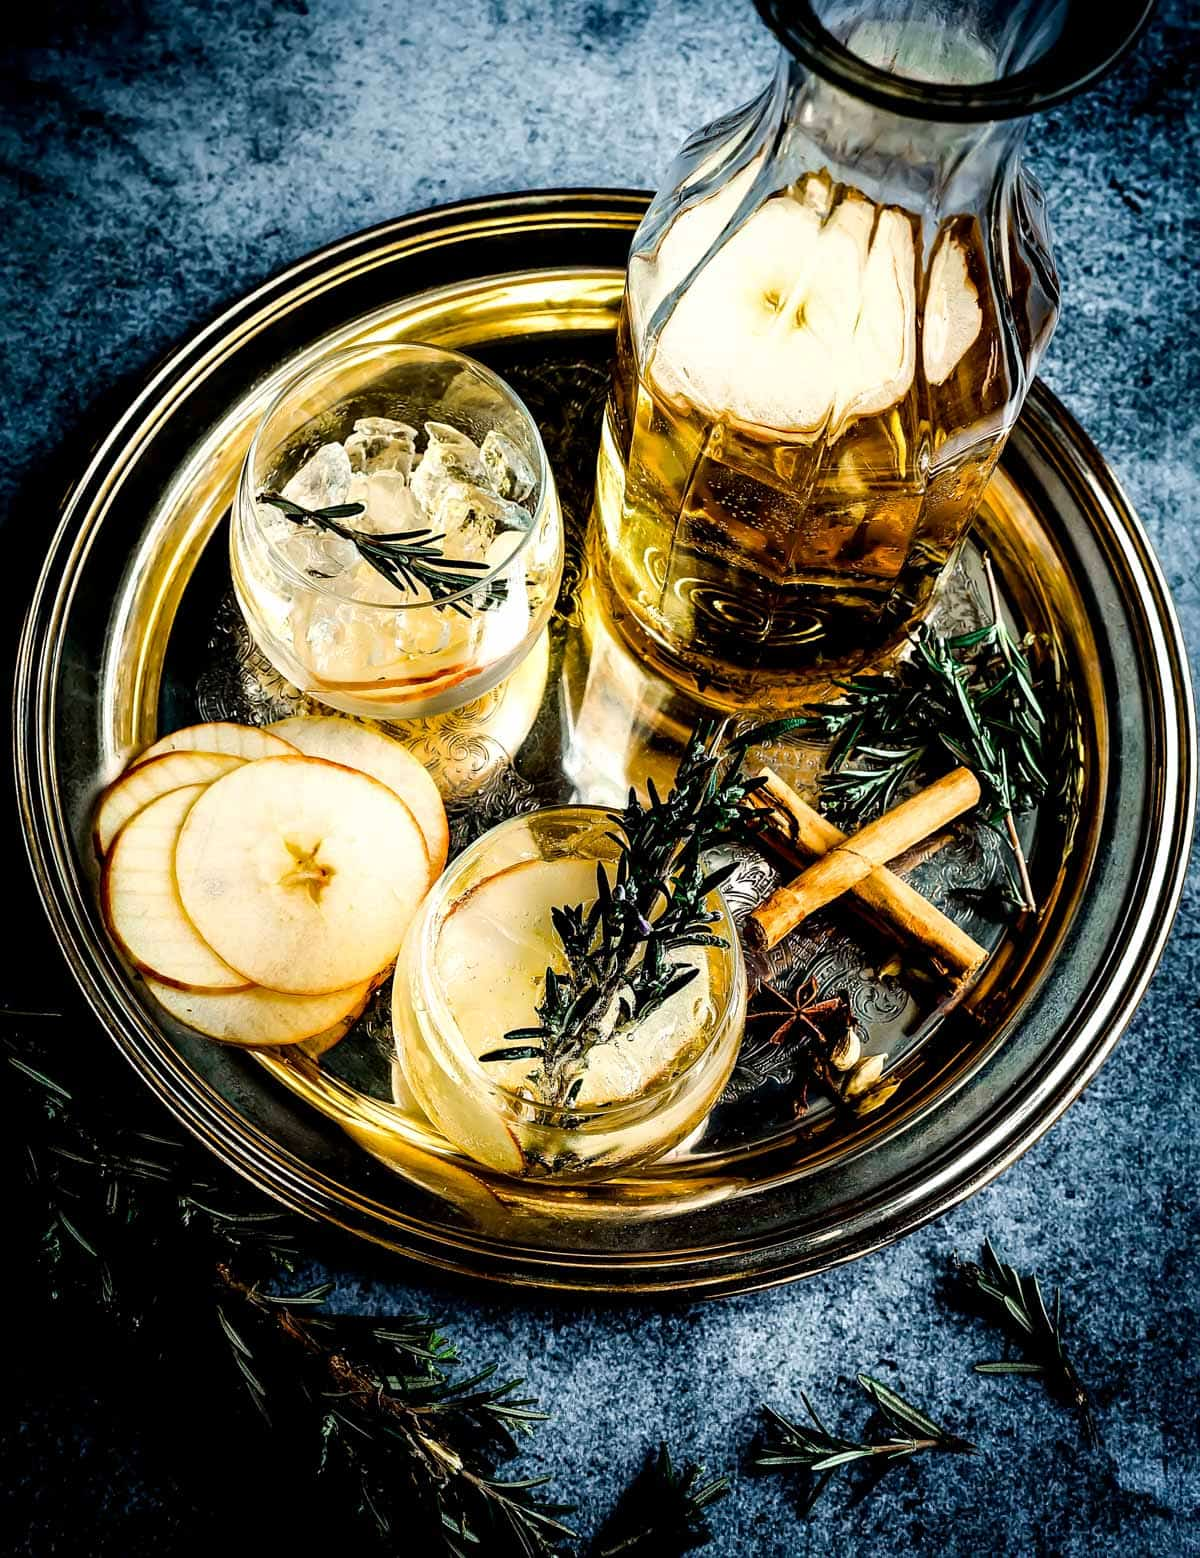 Spiked Apple Cider Recipe with Rum